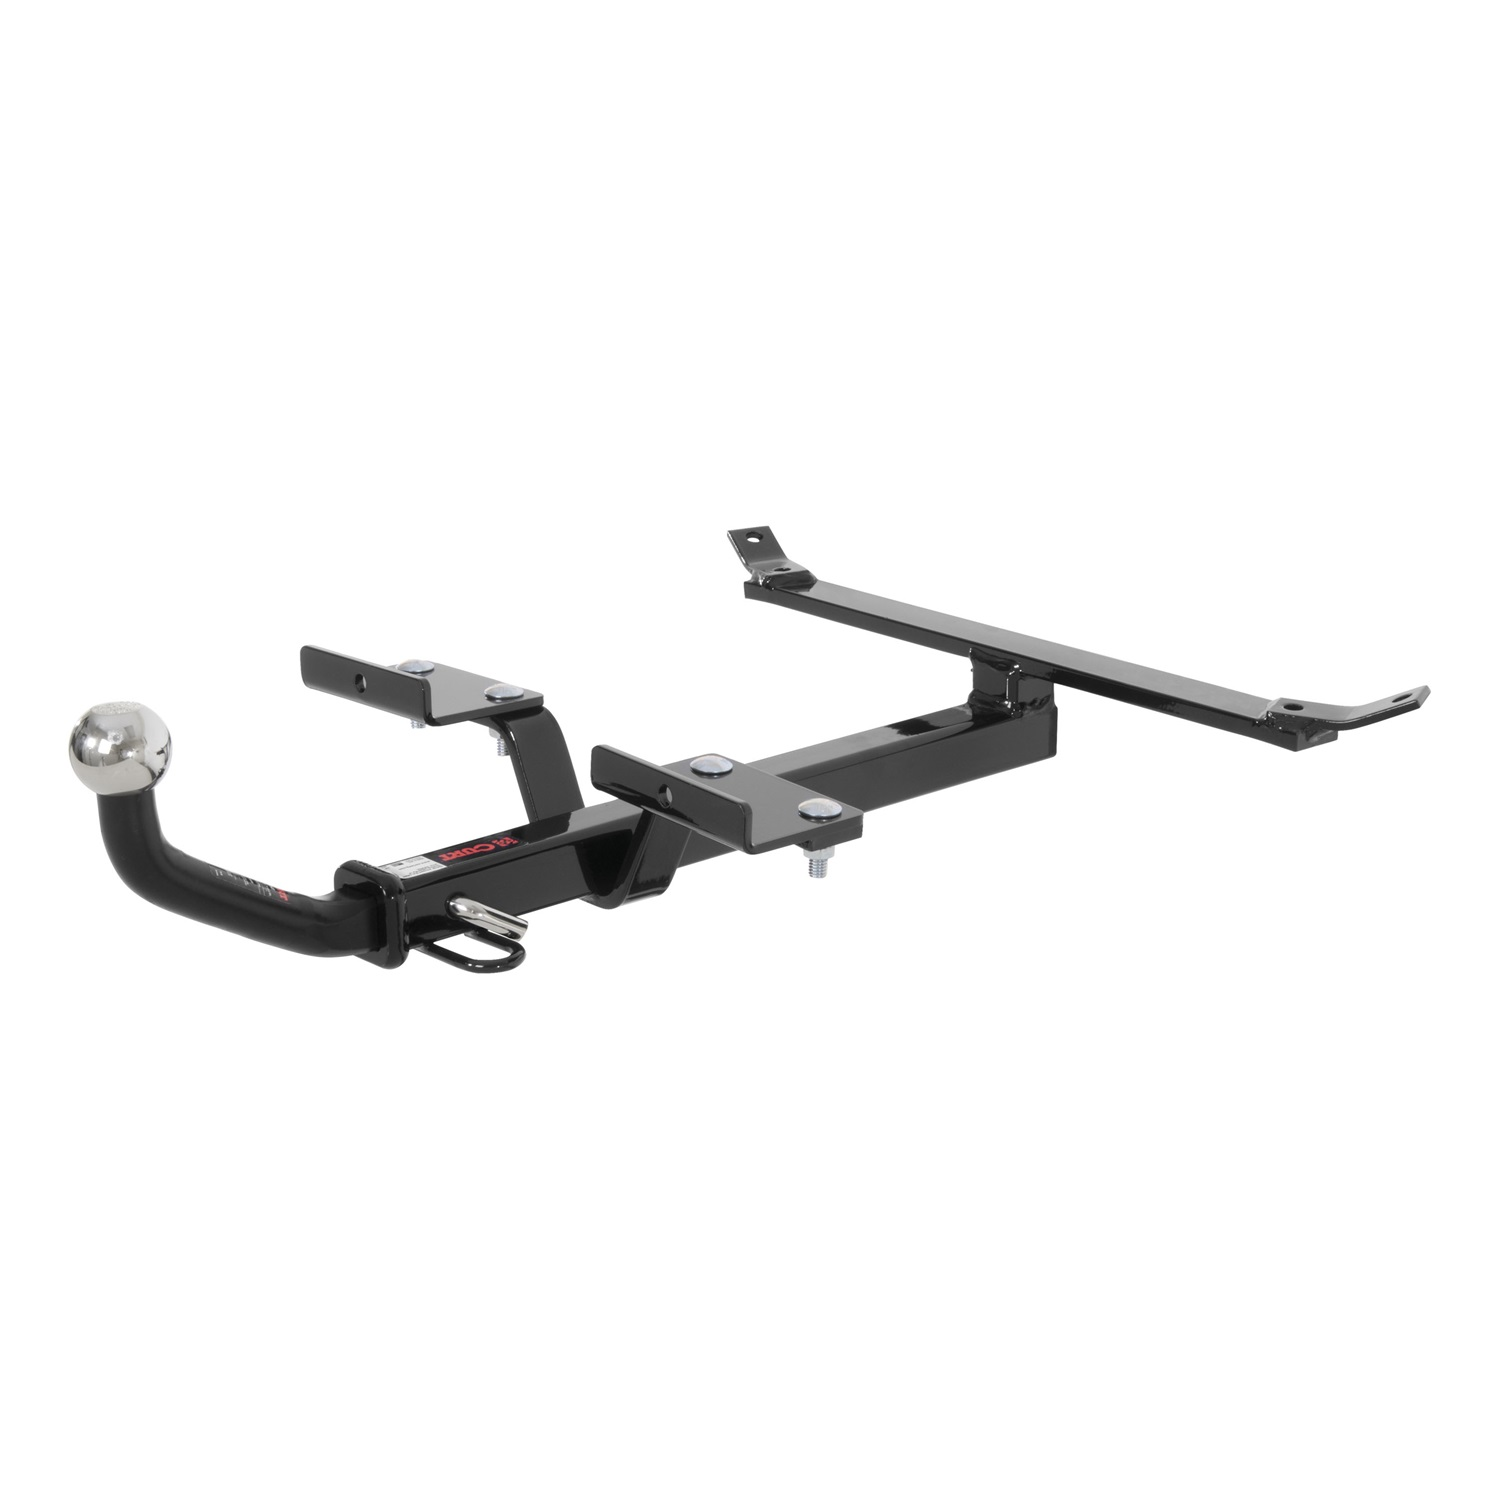 Curt 113391 Class I; 1.25 in. Receiver Hitch 02-08 X-Type * NEW * at Sears.com